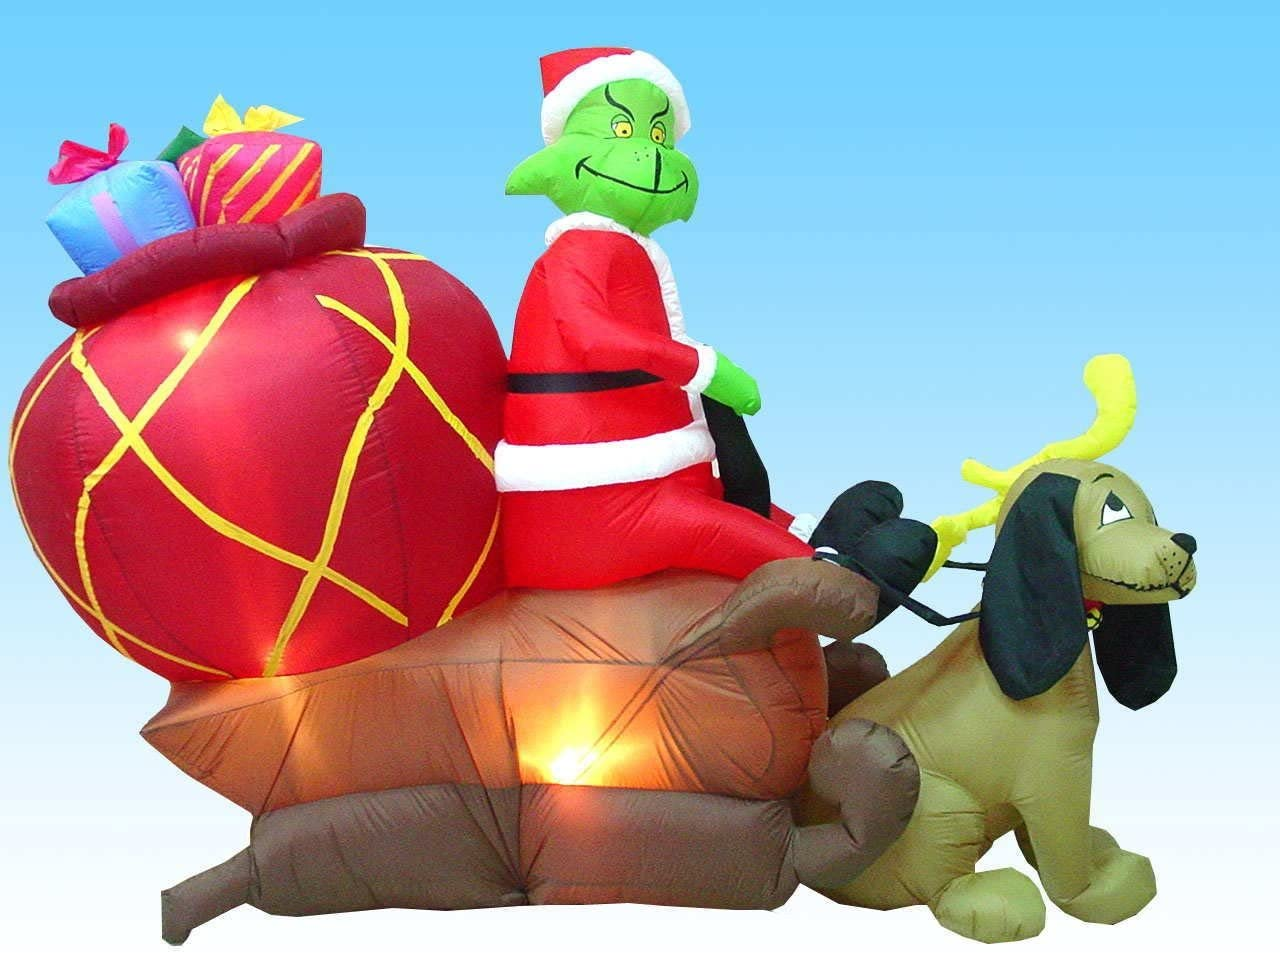 Amazon.com: Airblown Inflatable 7 Ft Tall Grinch in a Sleigh with